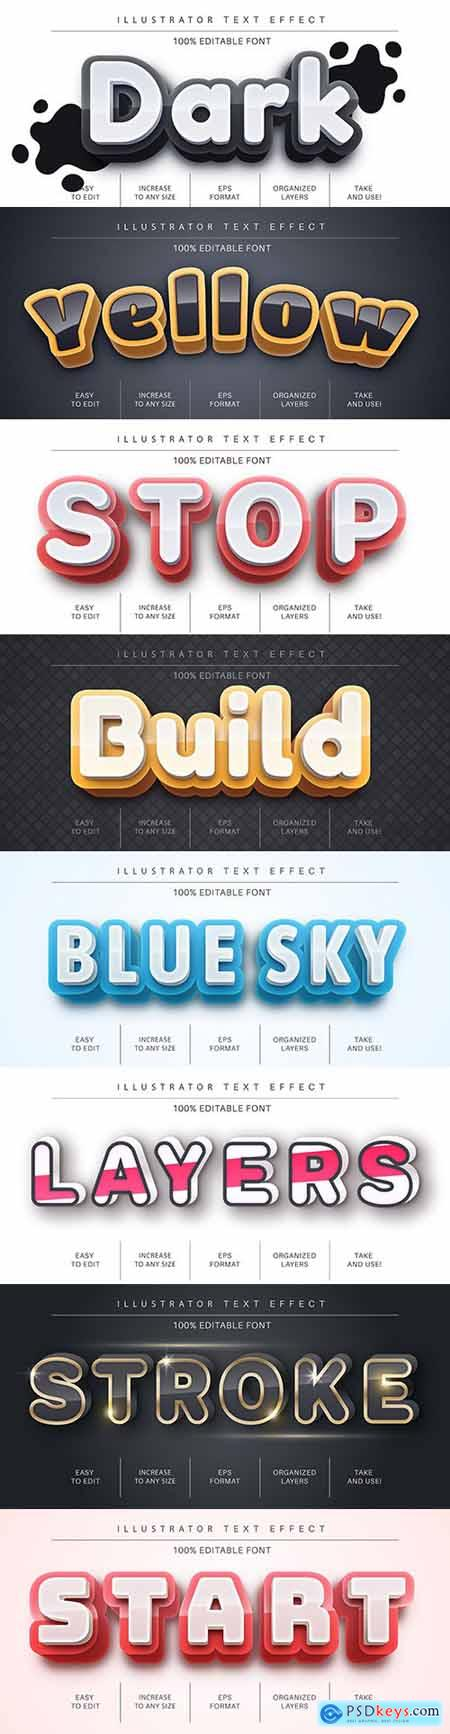 Editable font effect text collection illustration design 162